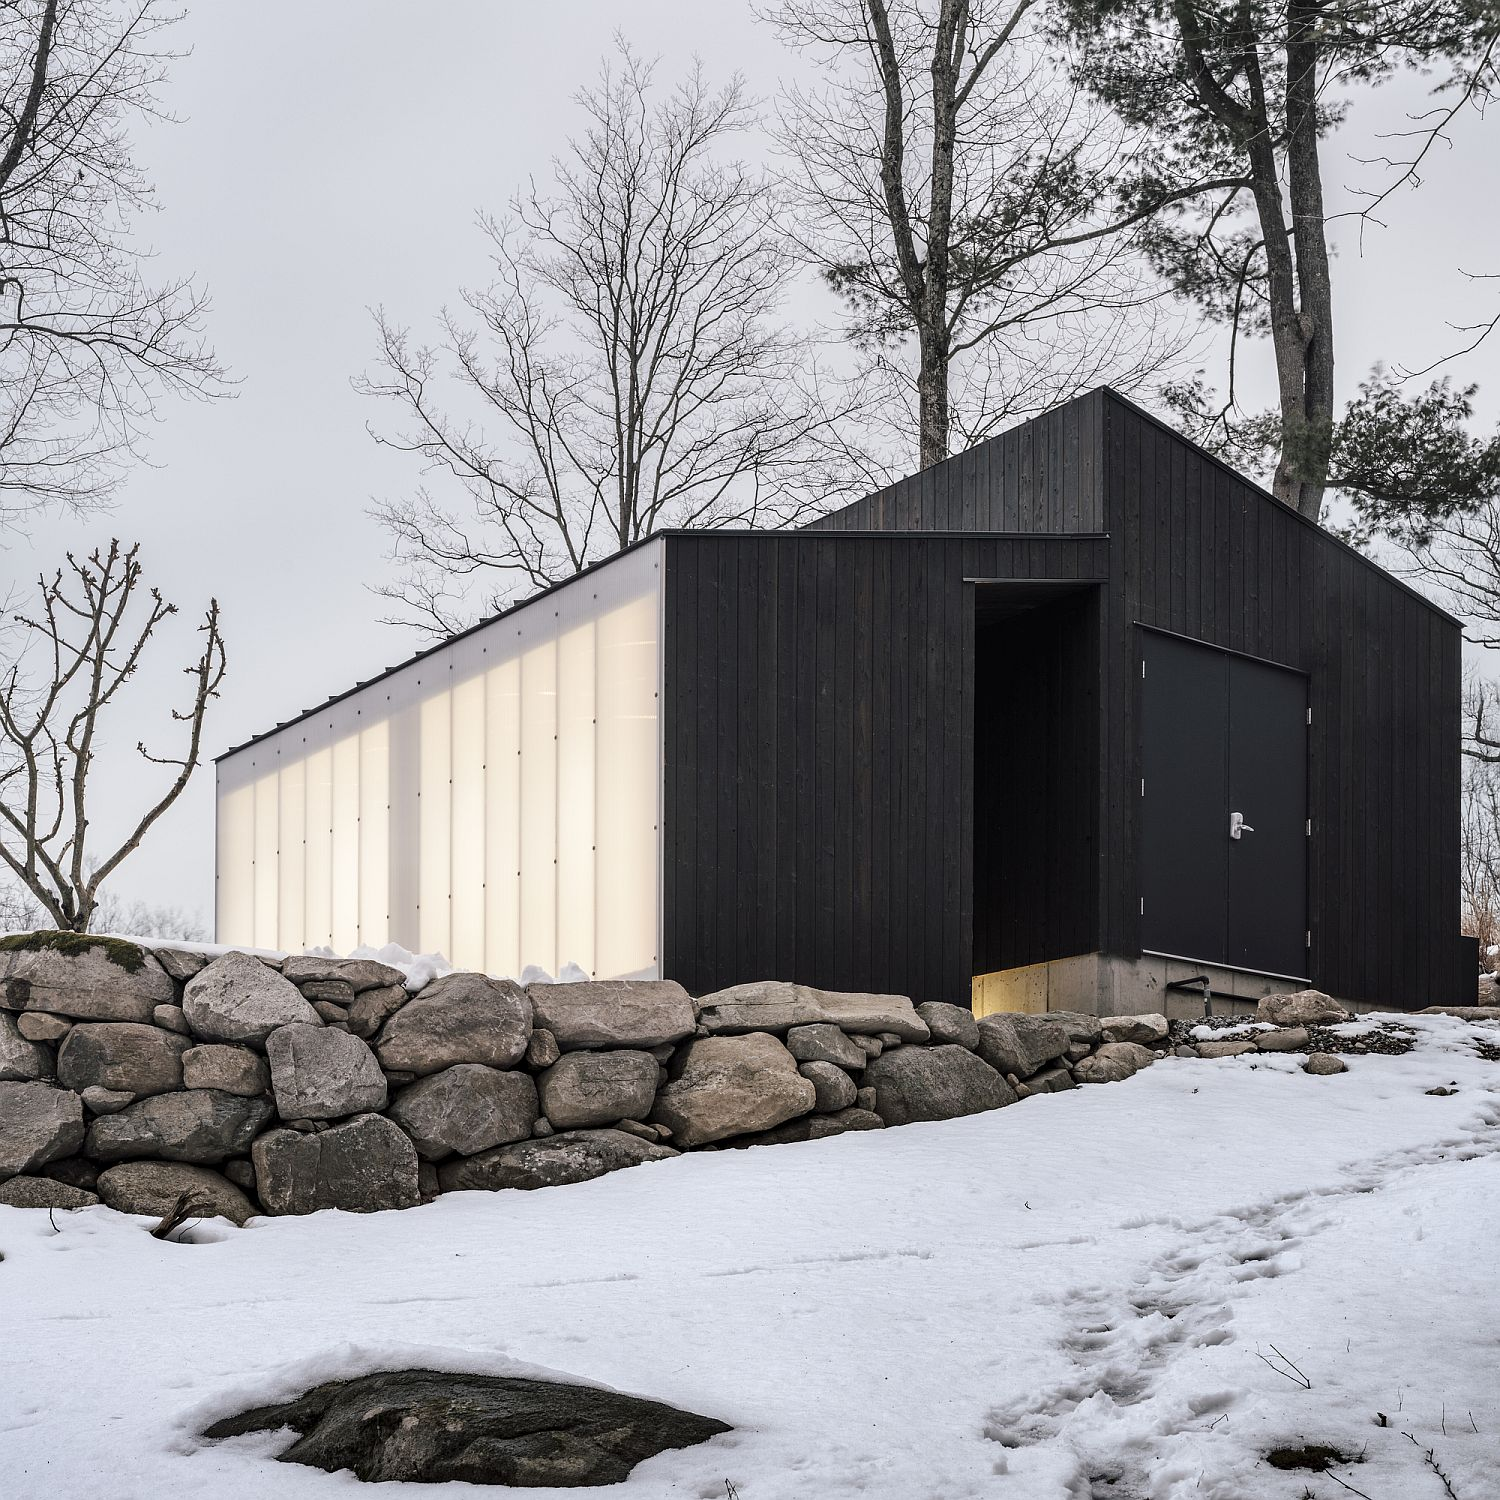 Stone-wood-and-polycarbonate-come-together-beautifully-at-this-small-pavilion